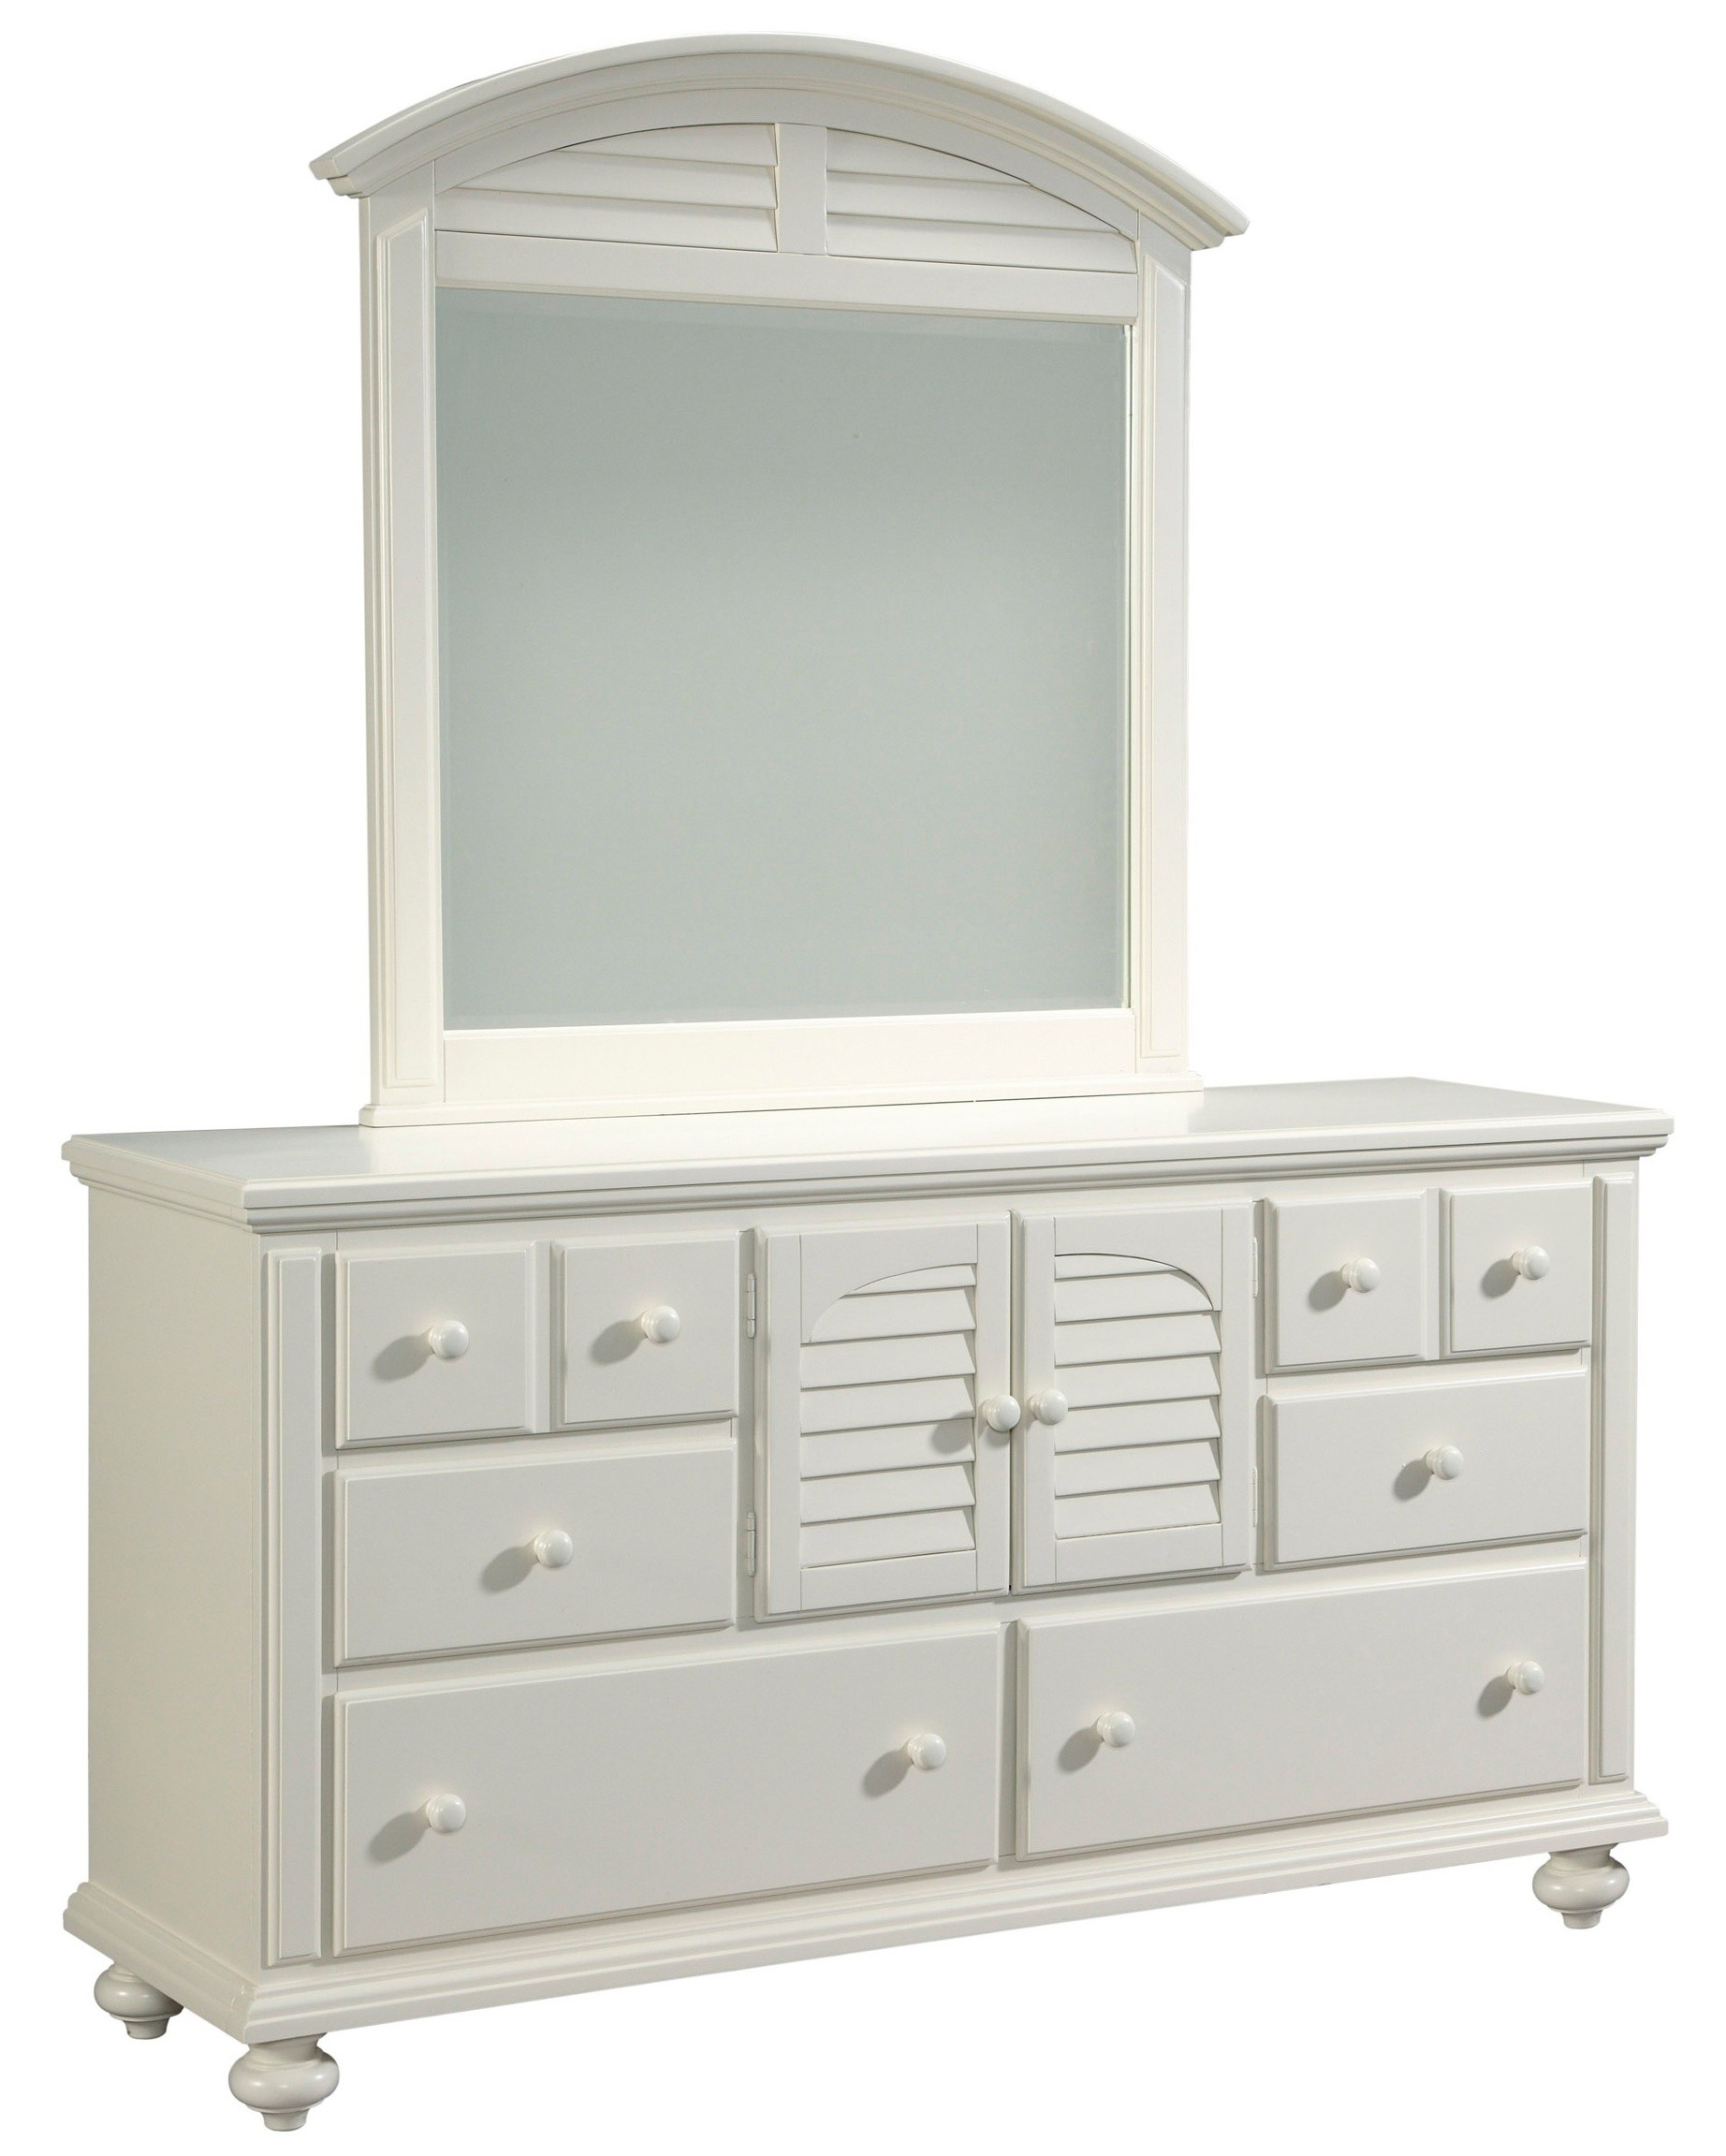 Seabrooke Panel Bedroom Set From Broyhill 4471 250 251 450 Coleman Furniture